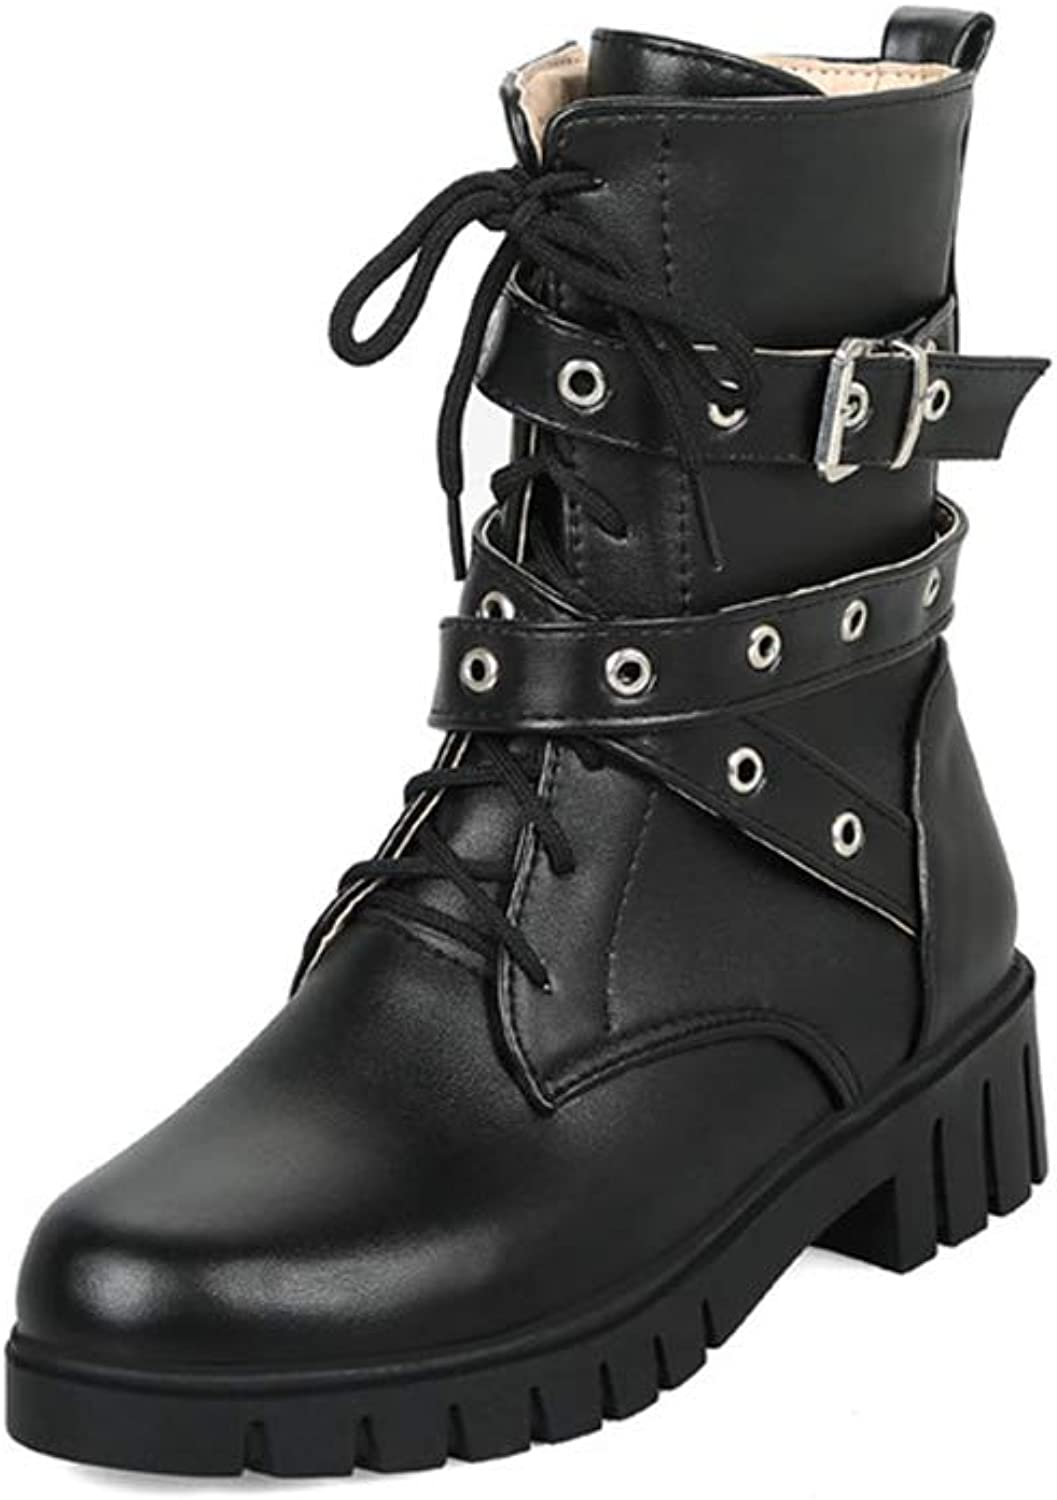 Woman Ankle Boots Lace Up Buckle Strap Zipper Round Toe High Chunky Heel Female Fashion Antislip Martin Boots